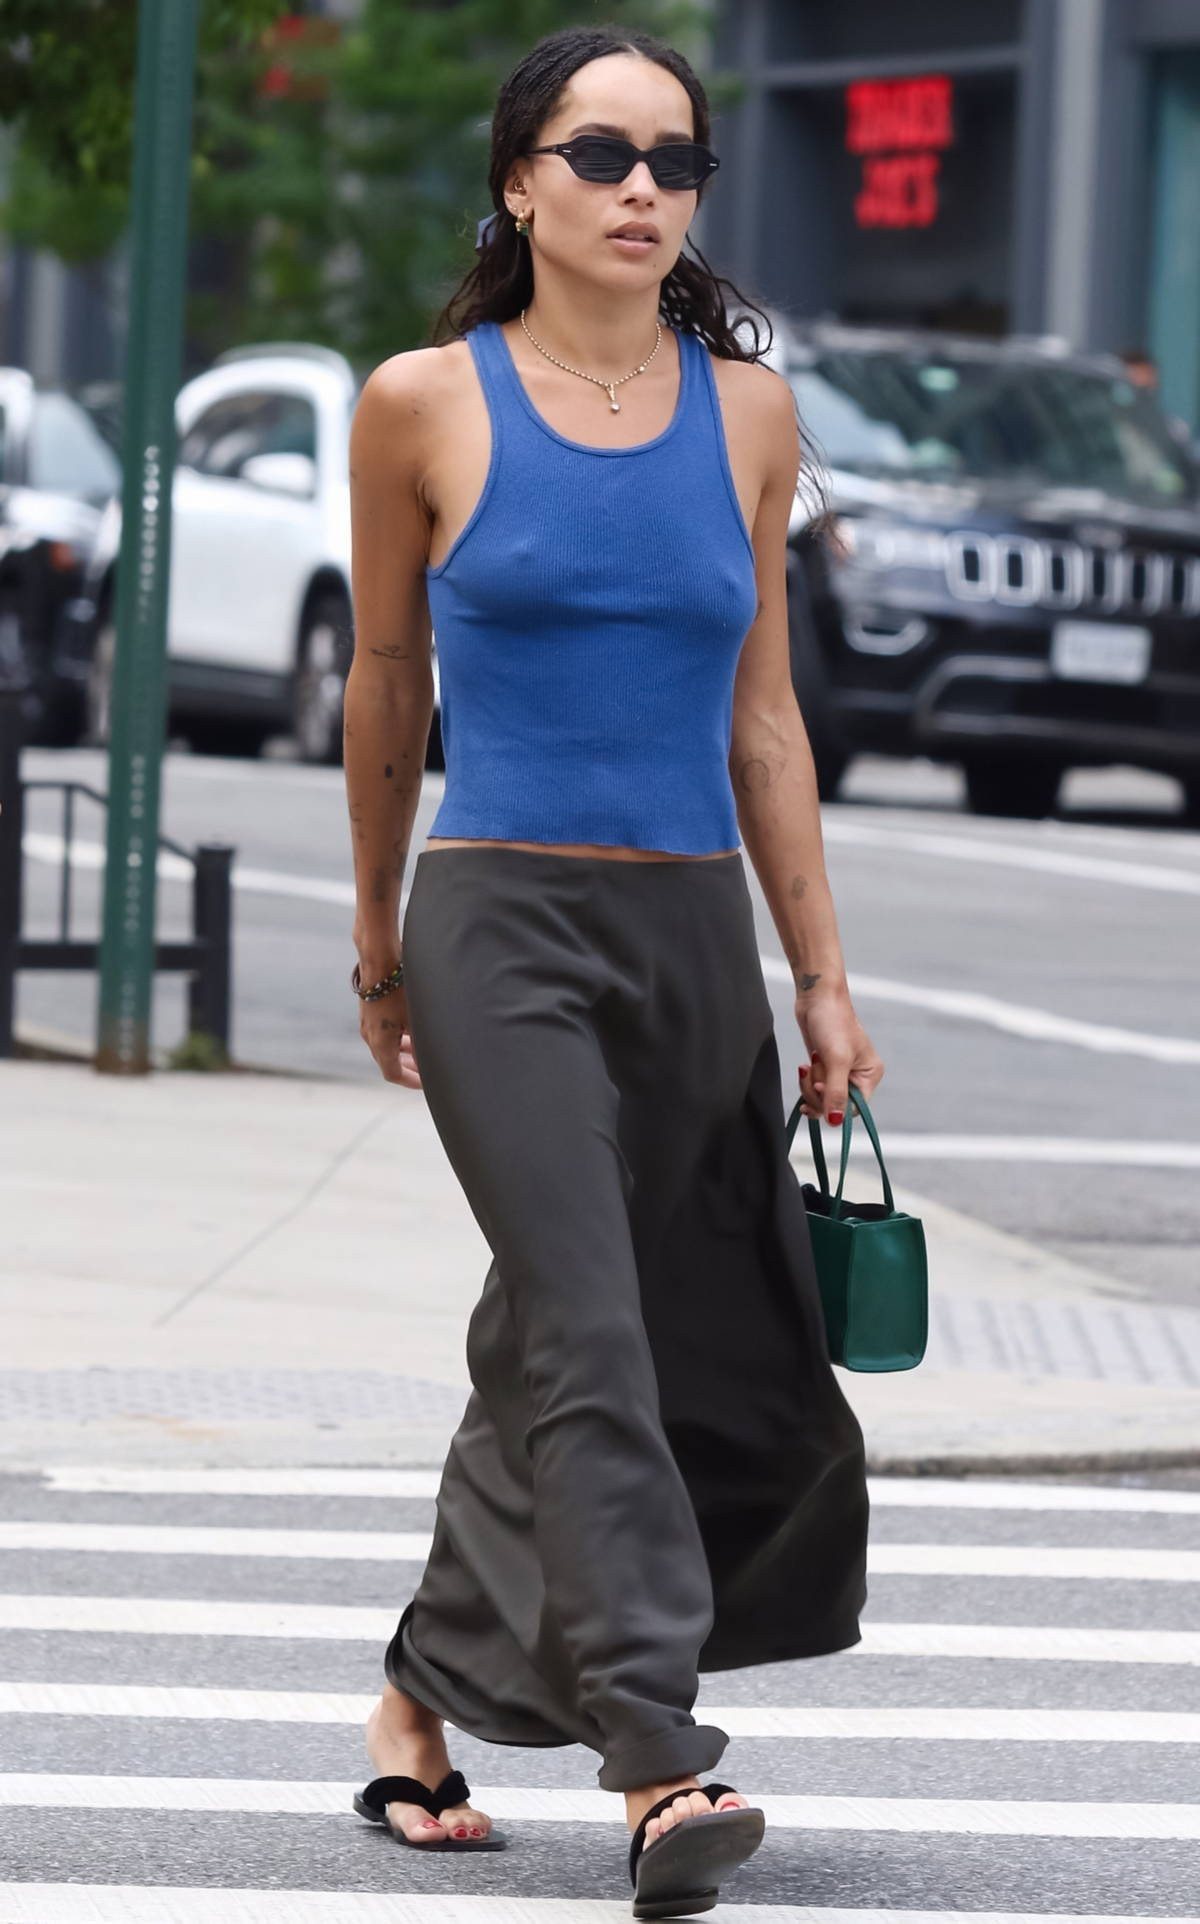 Zoe Kravitz wears a blue tank top and black long skirt as she steps out for lunch in New York City